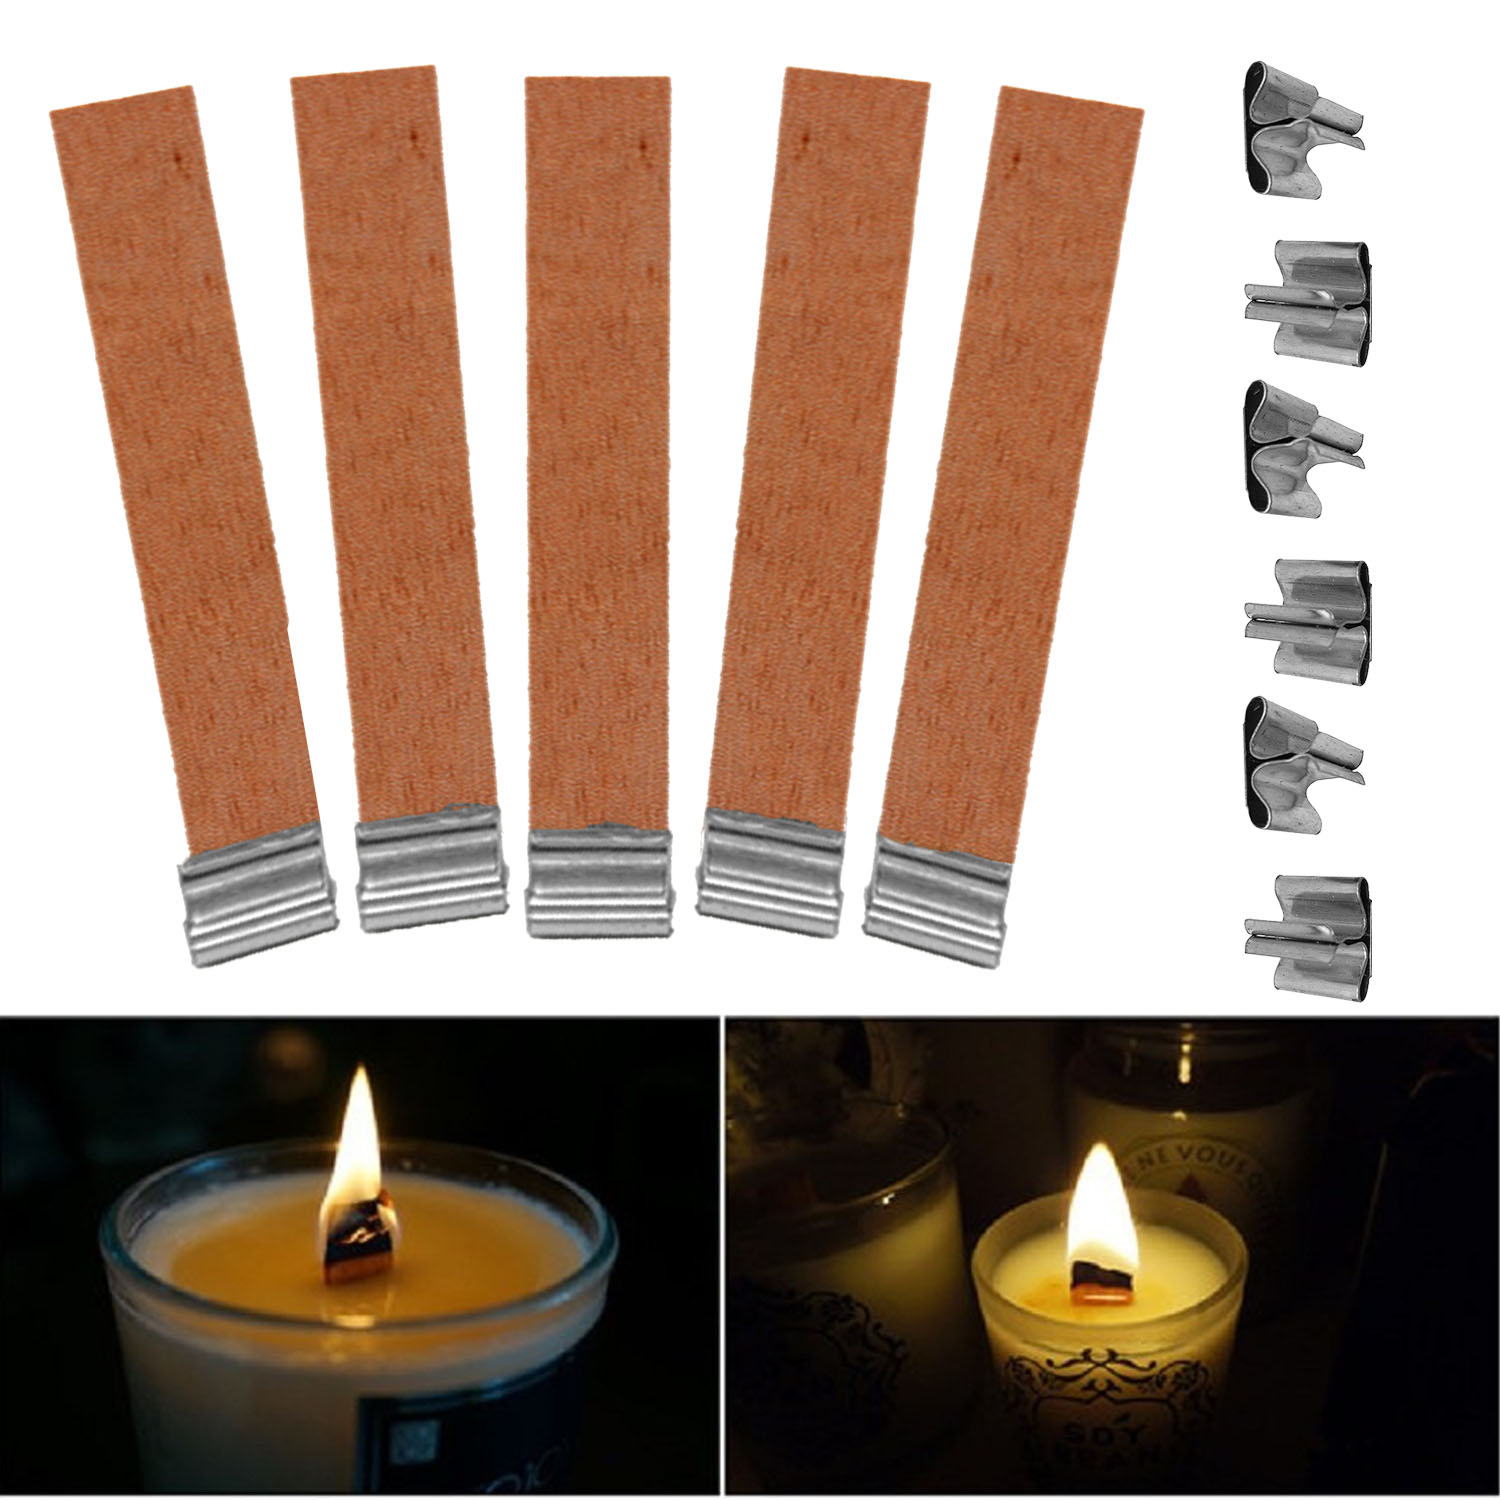 50 PCS 12.5 x 75mm Wood Candle Wicks Supplies Wick for ...